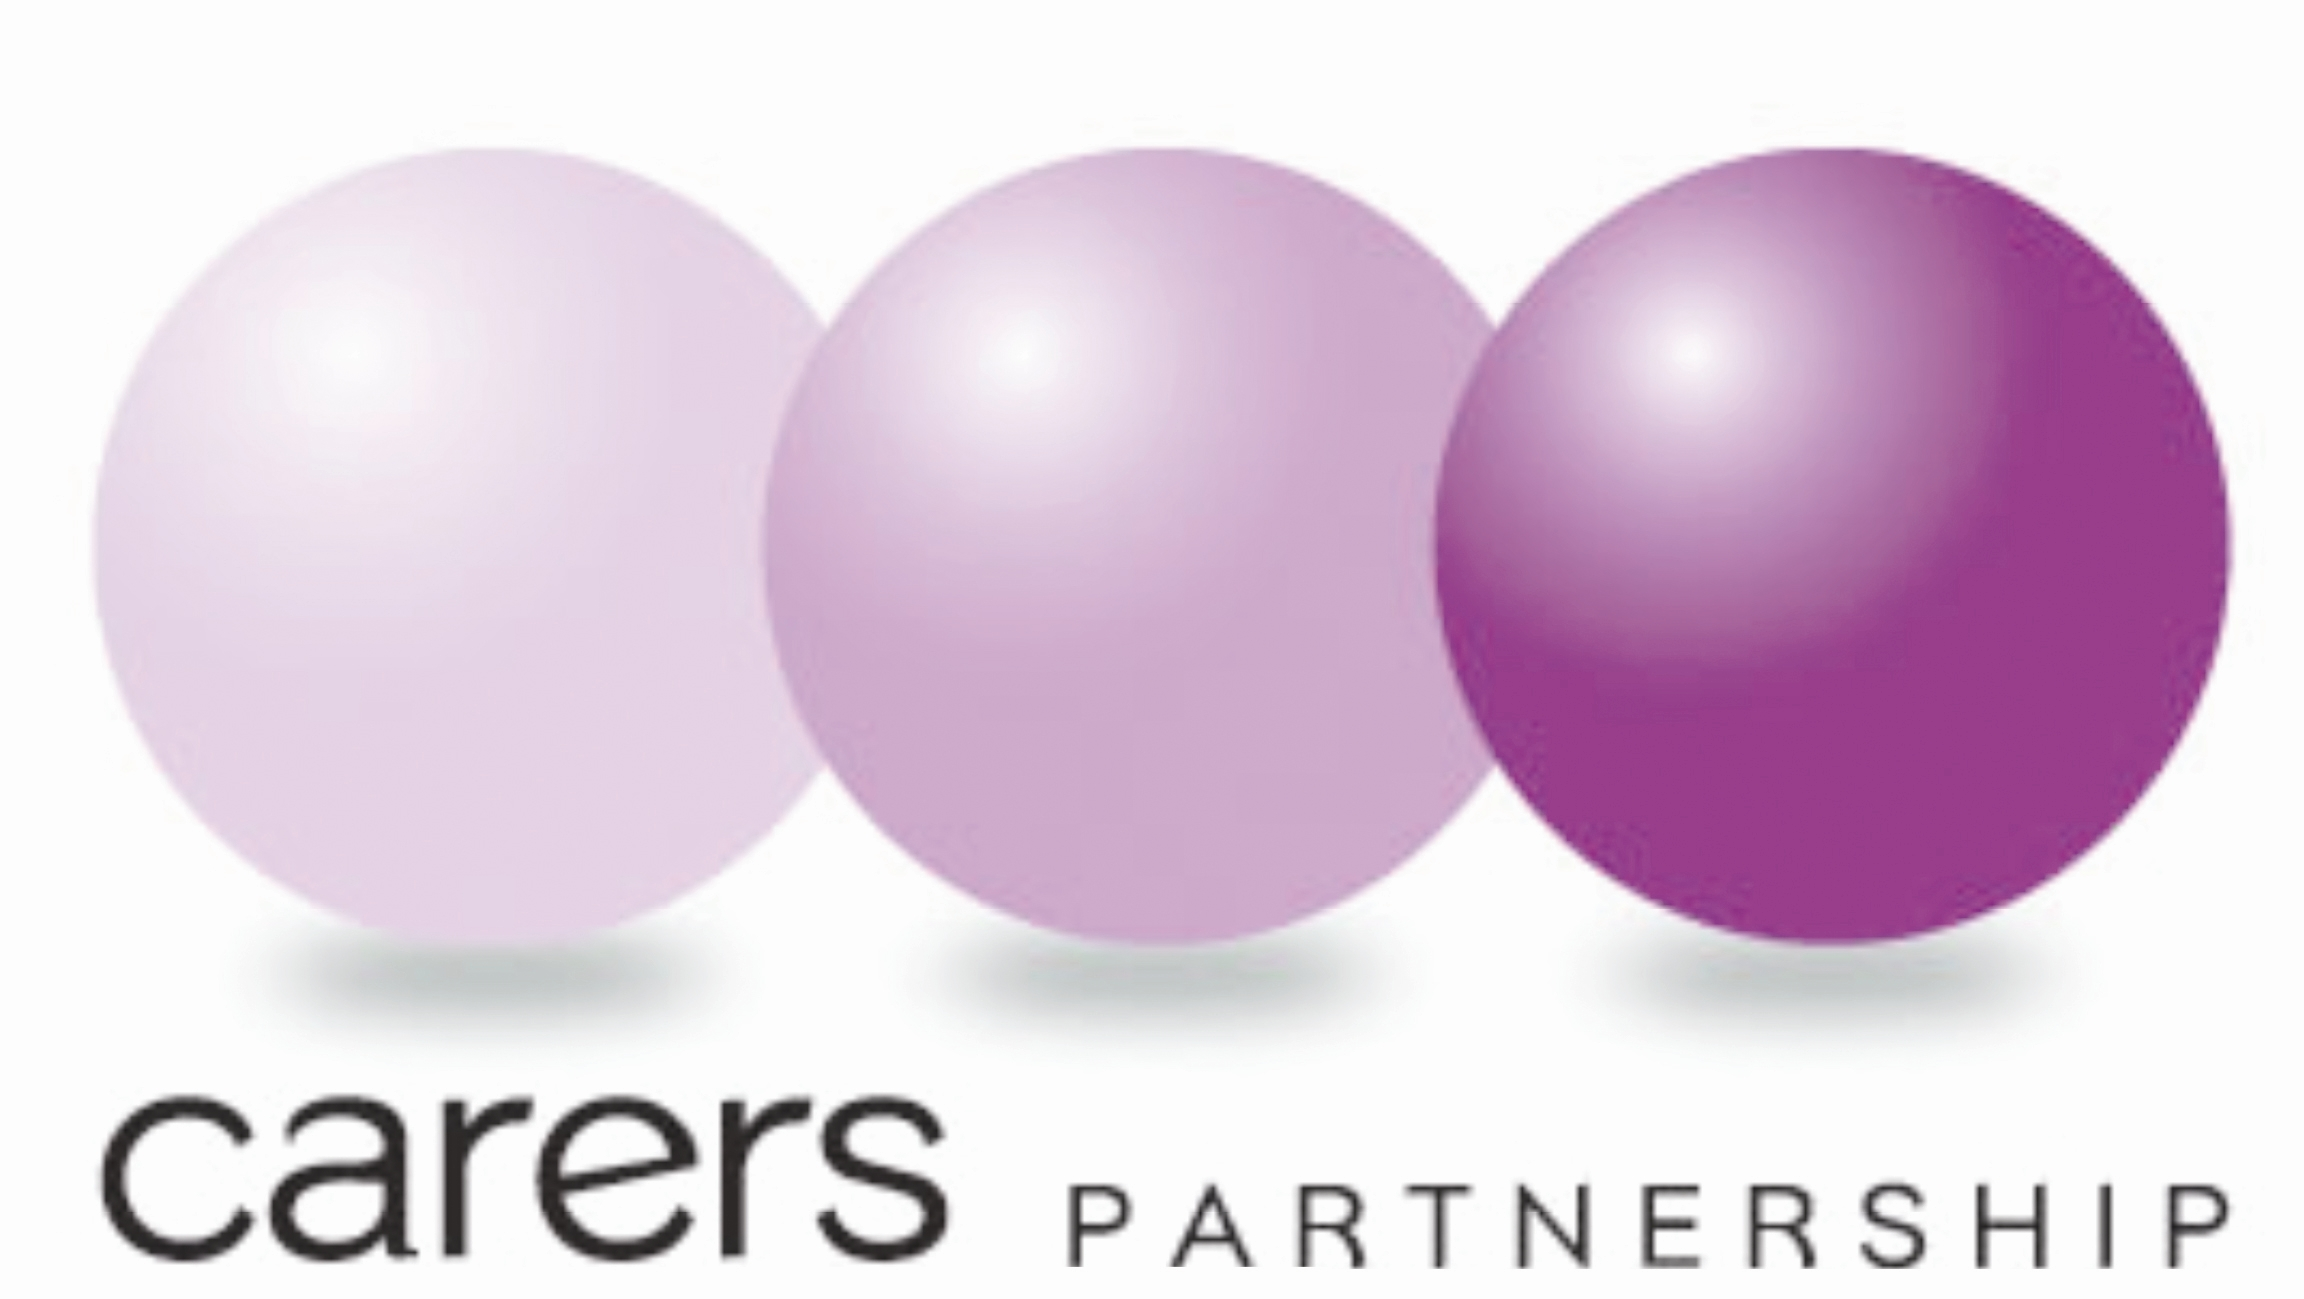 Carers Partnership